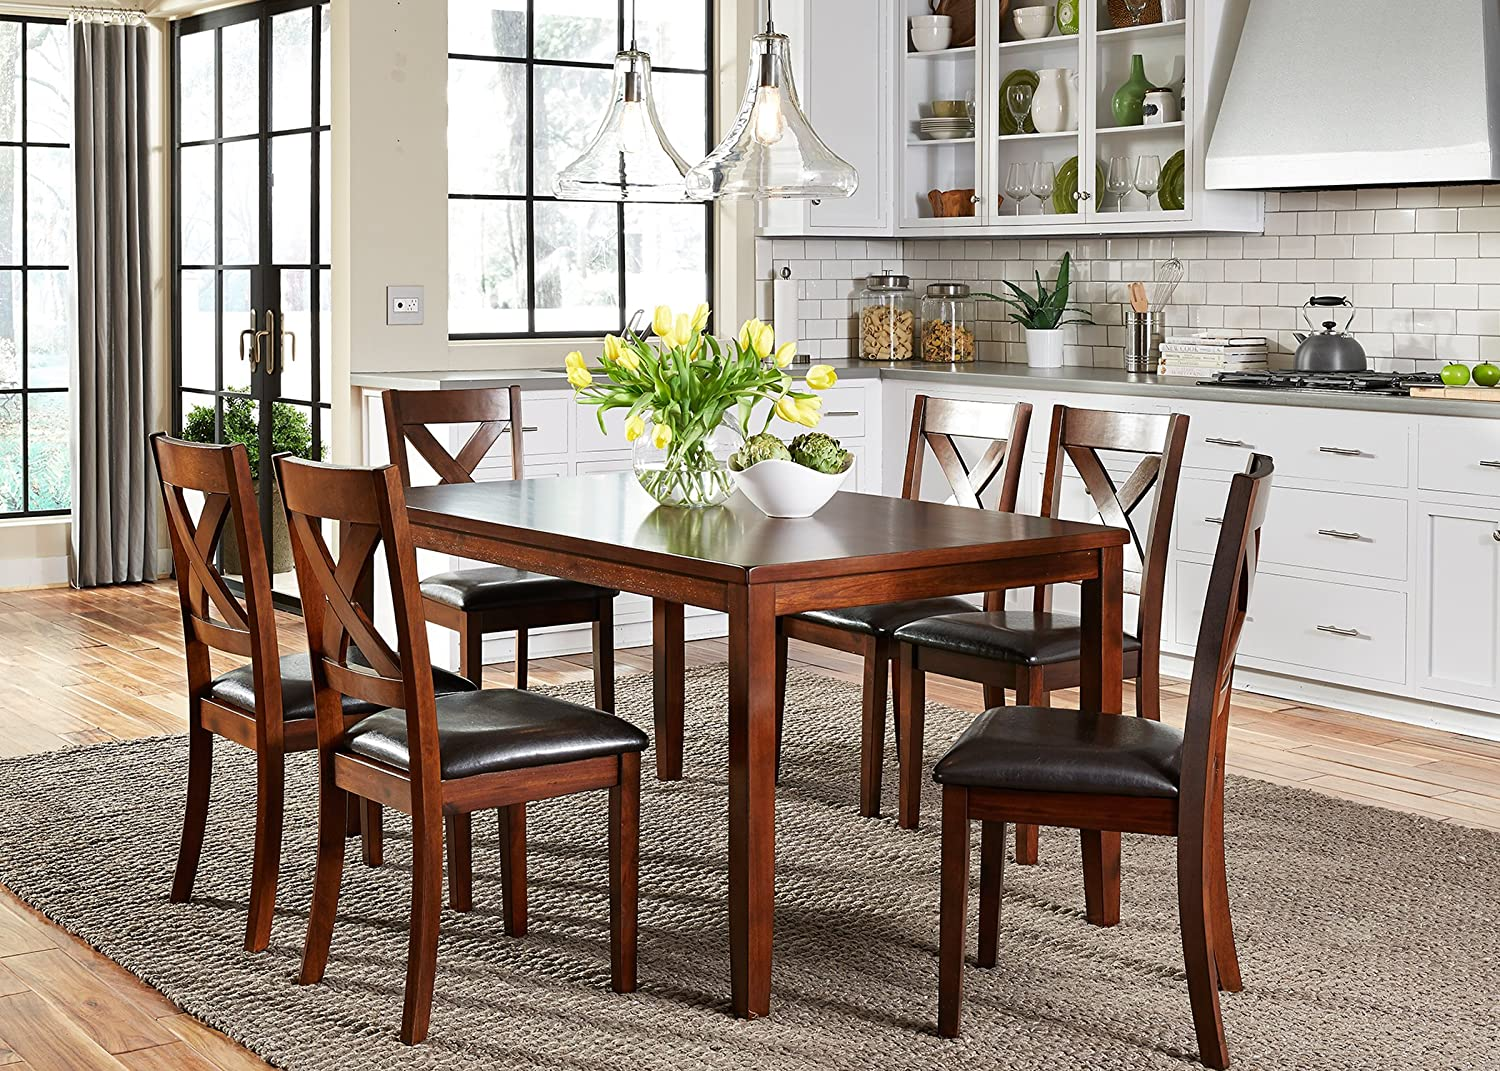 Liberty Furniture Industries Thornton 7 Piece Rectangular Table Set, W36 x D60 x H30, Medium Brown